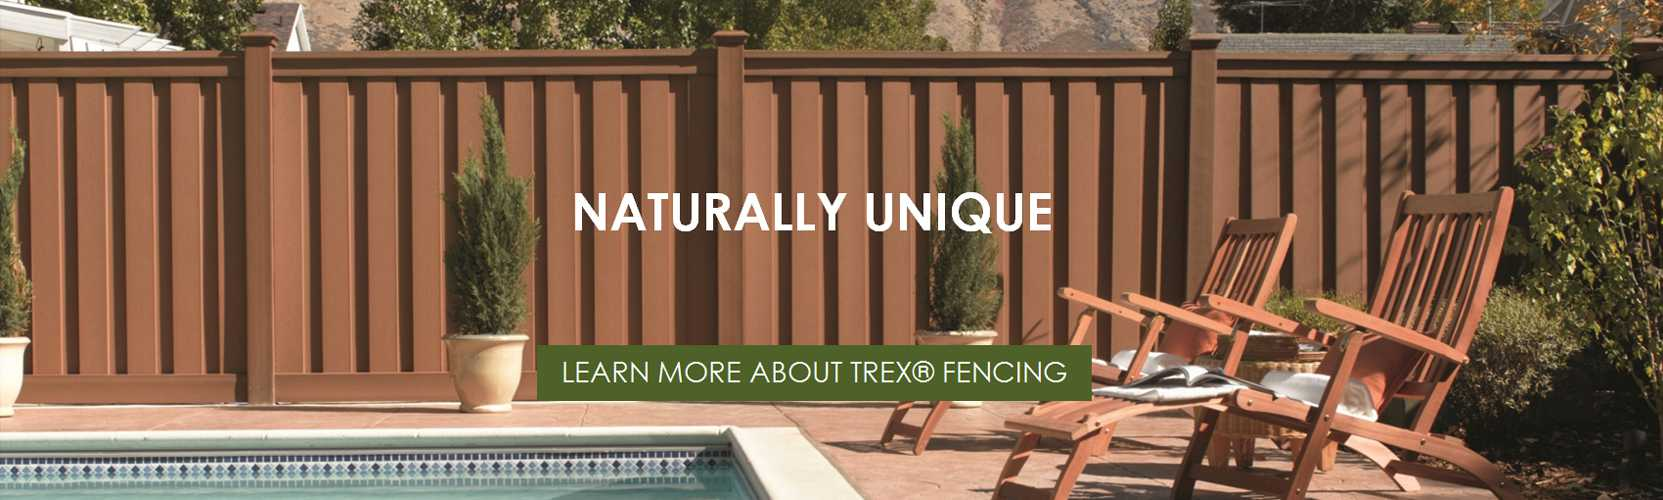 Trex Fencing The Composite Alternative To Wood Amp Vinyl